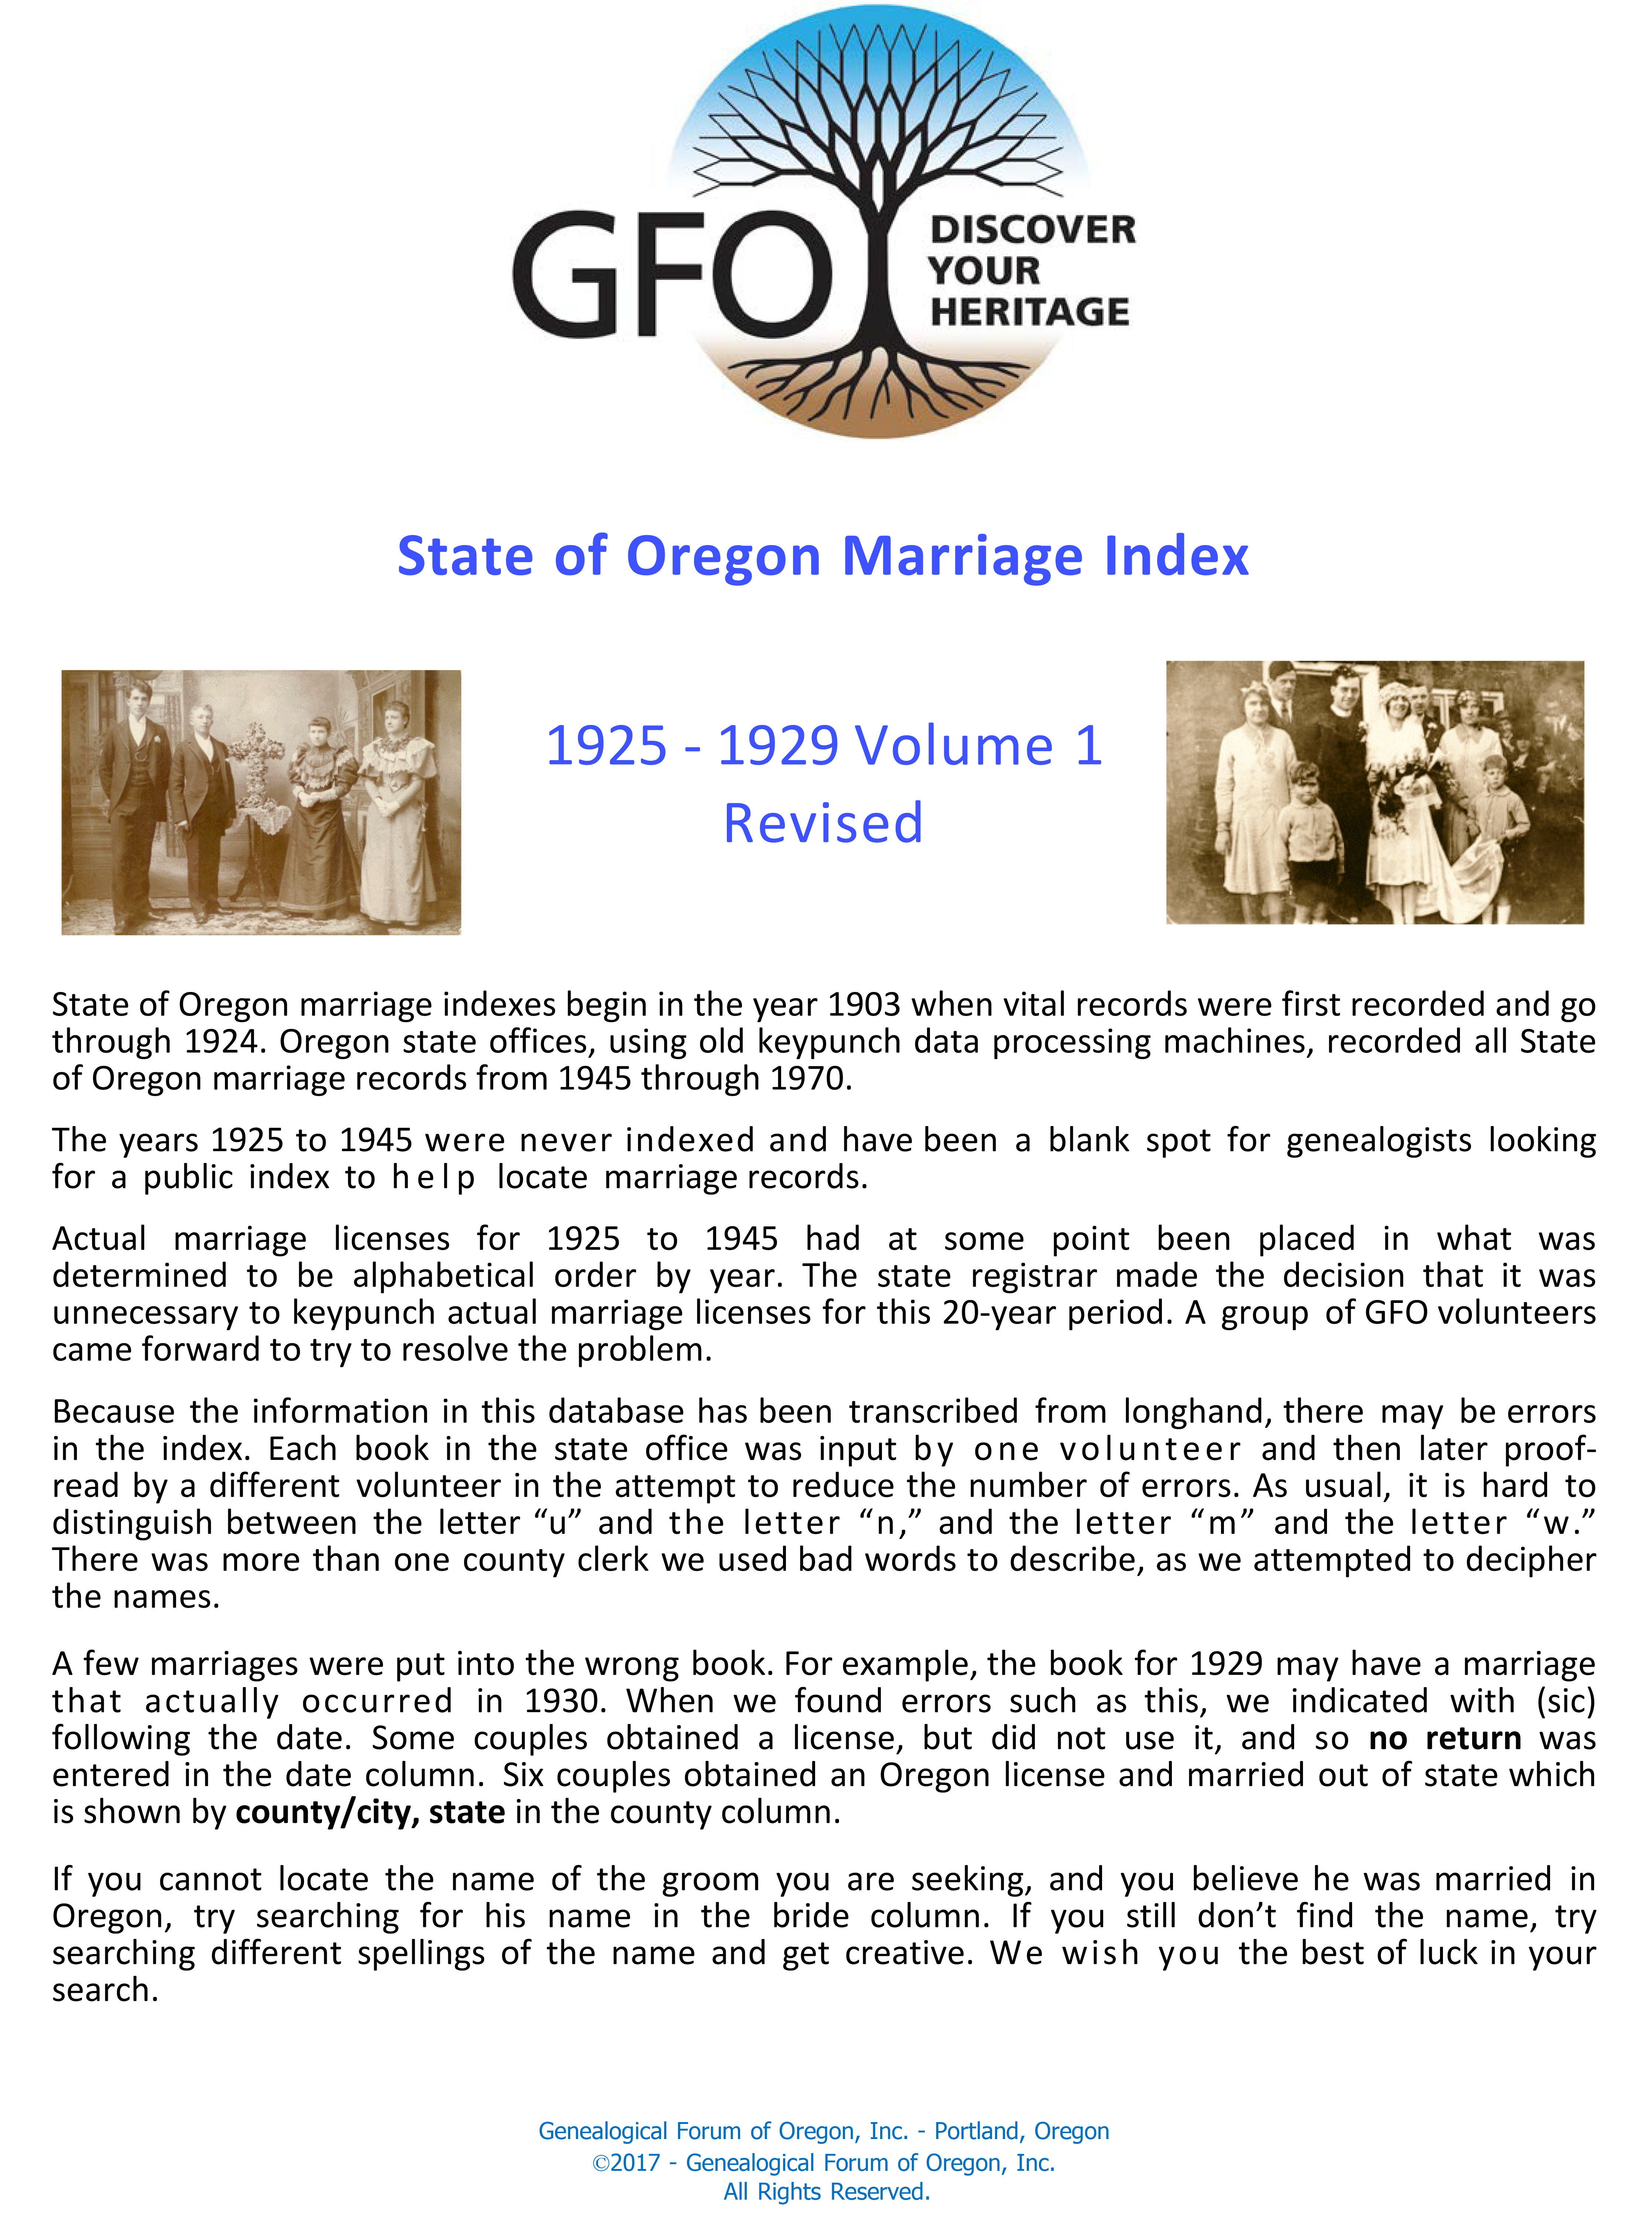 State of Oregon Marriage Index, 1940-1945 (Vol 4 of 4)